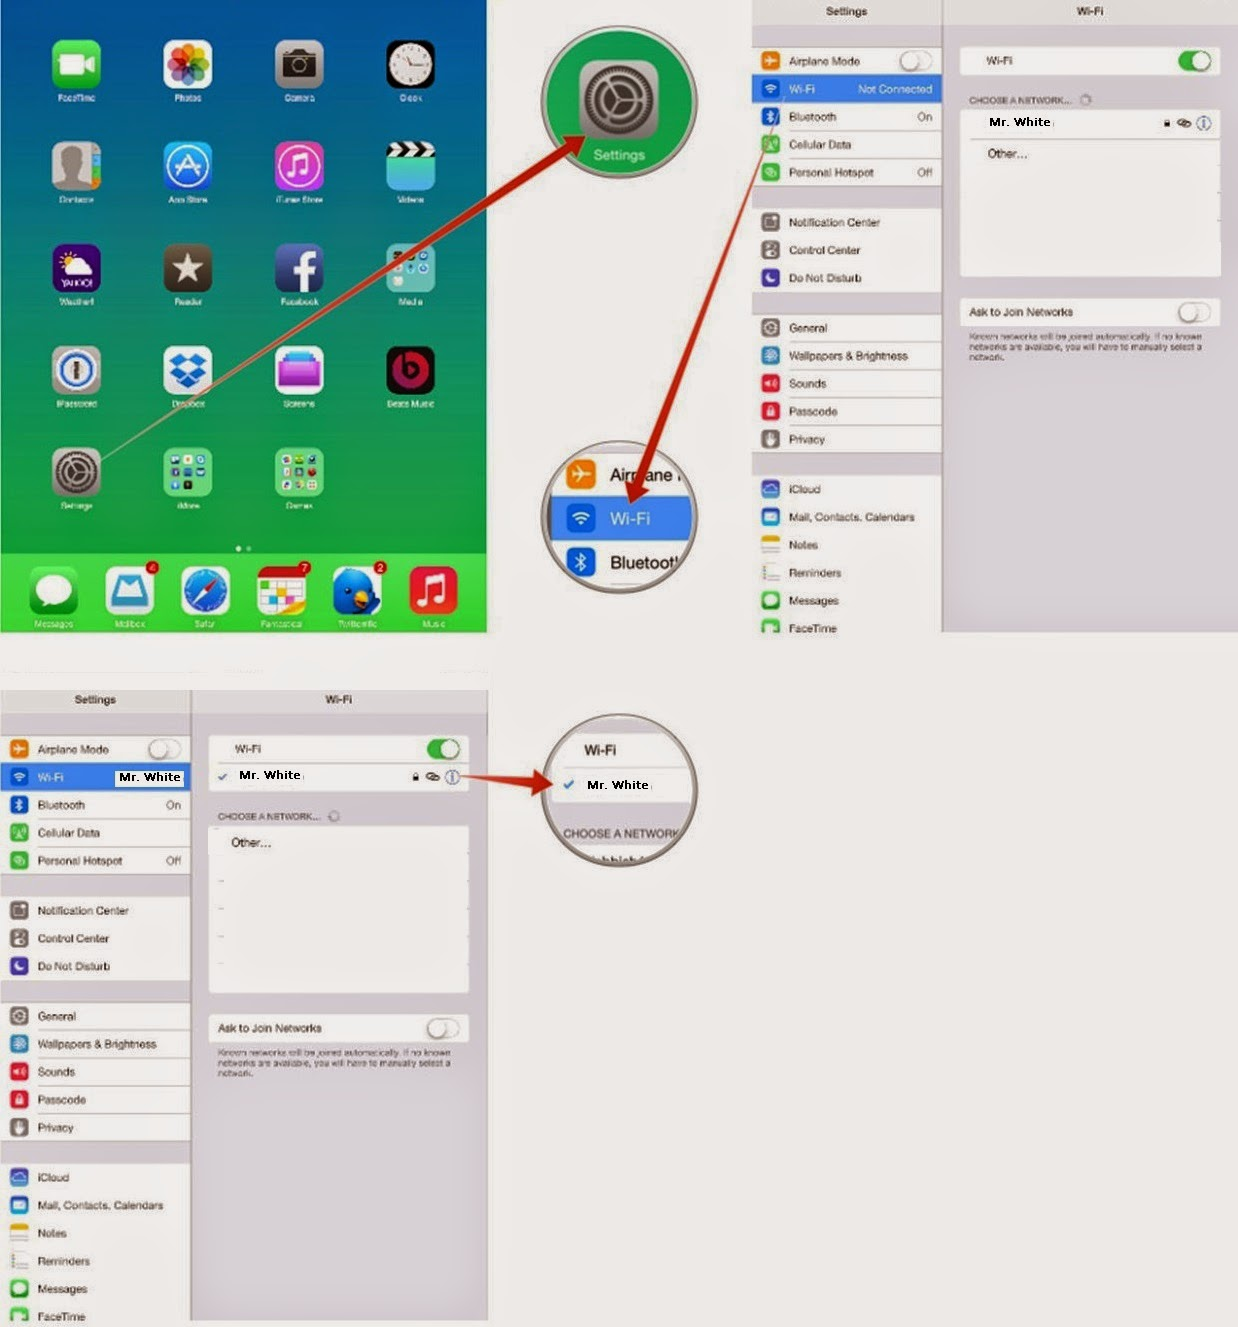 How to make your iPhone as WiFi router to share internet